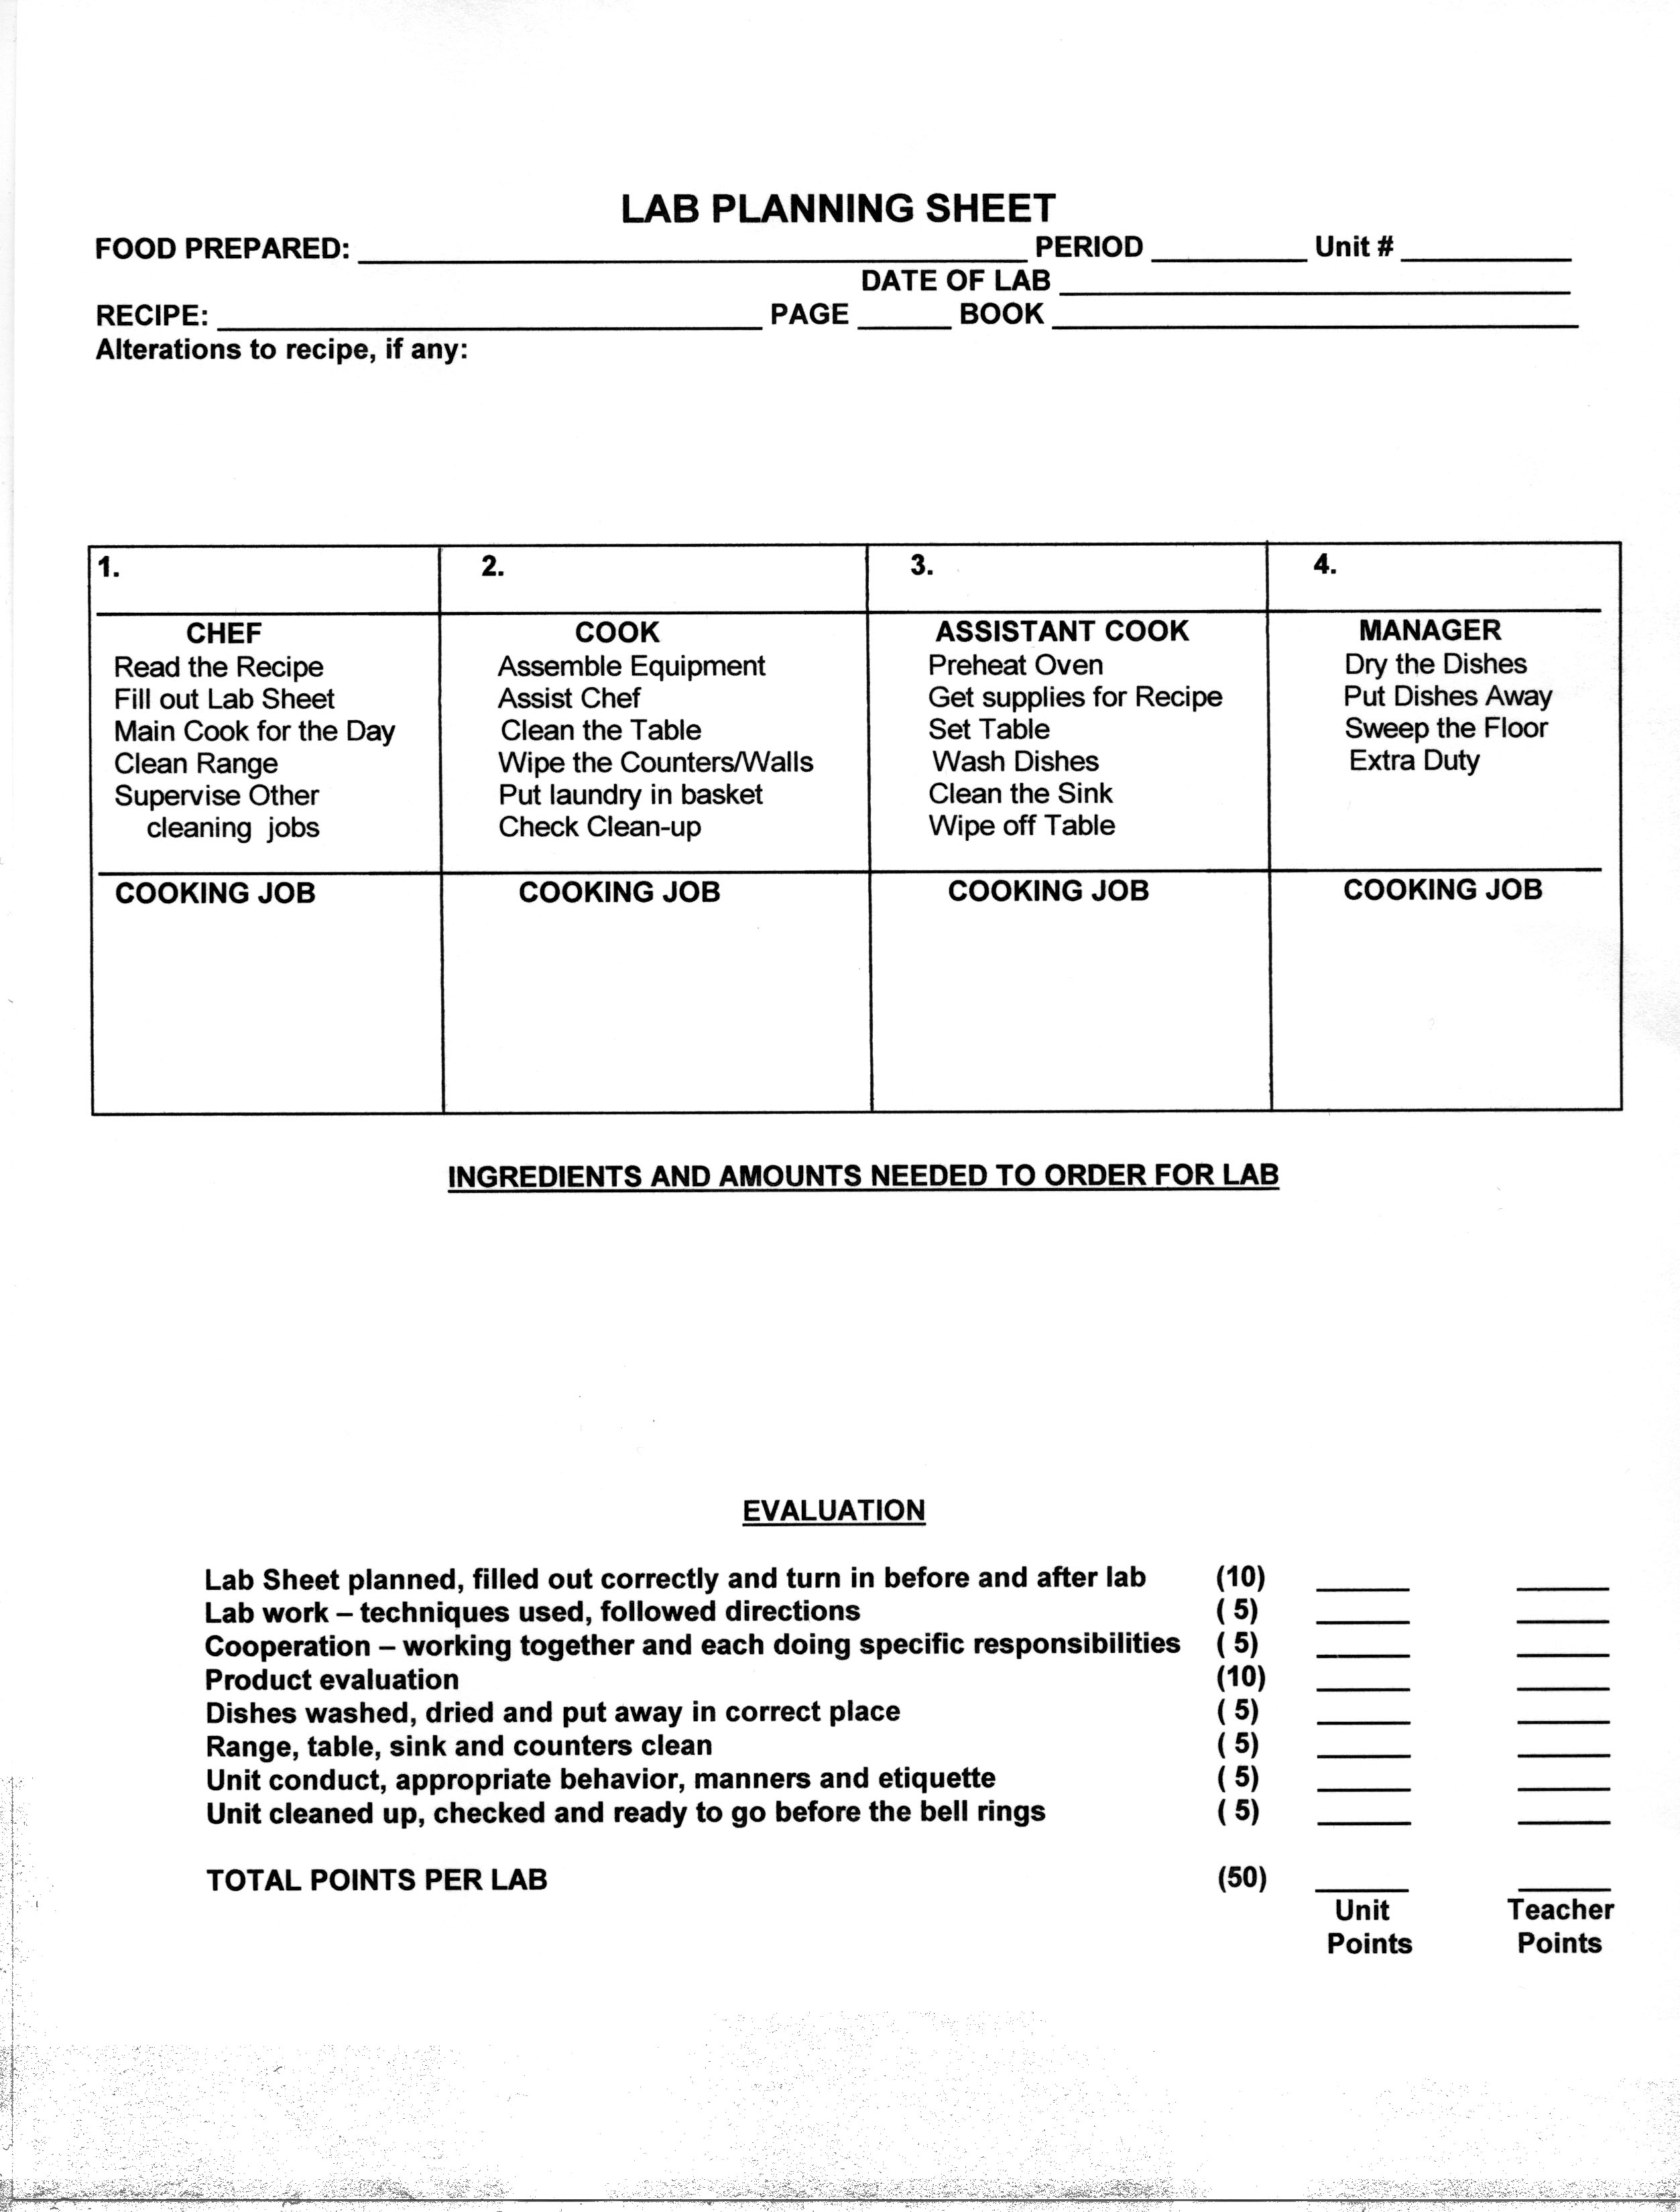 Yeast Breads Refrigerator Rolls Evaluation and Lab – Army Trips Worksheet